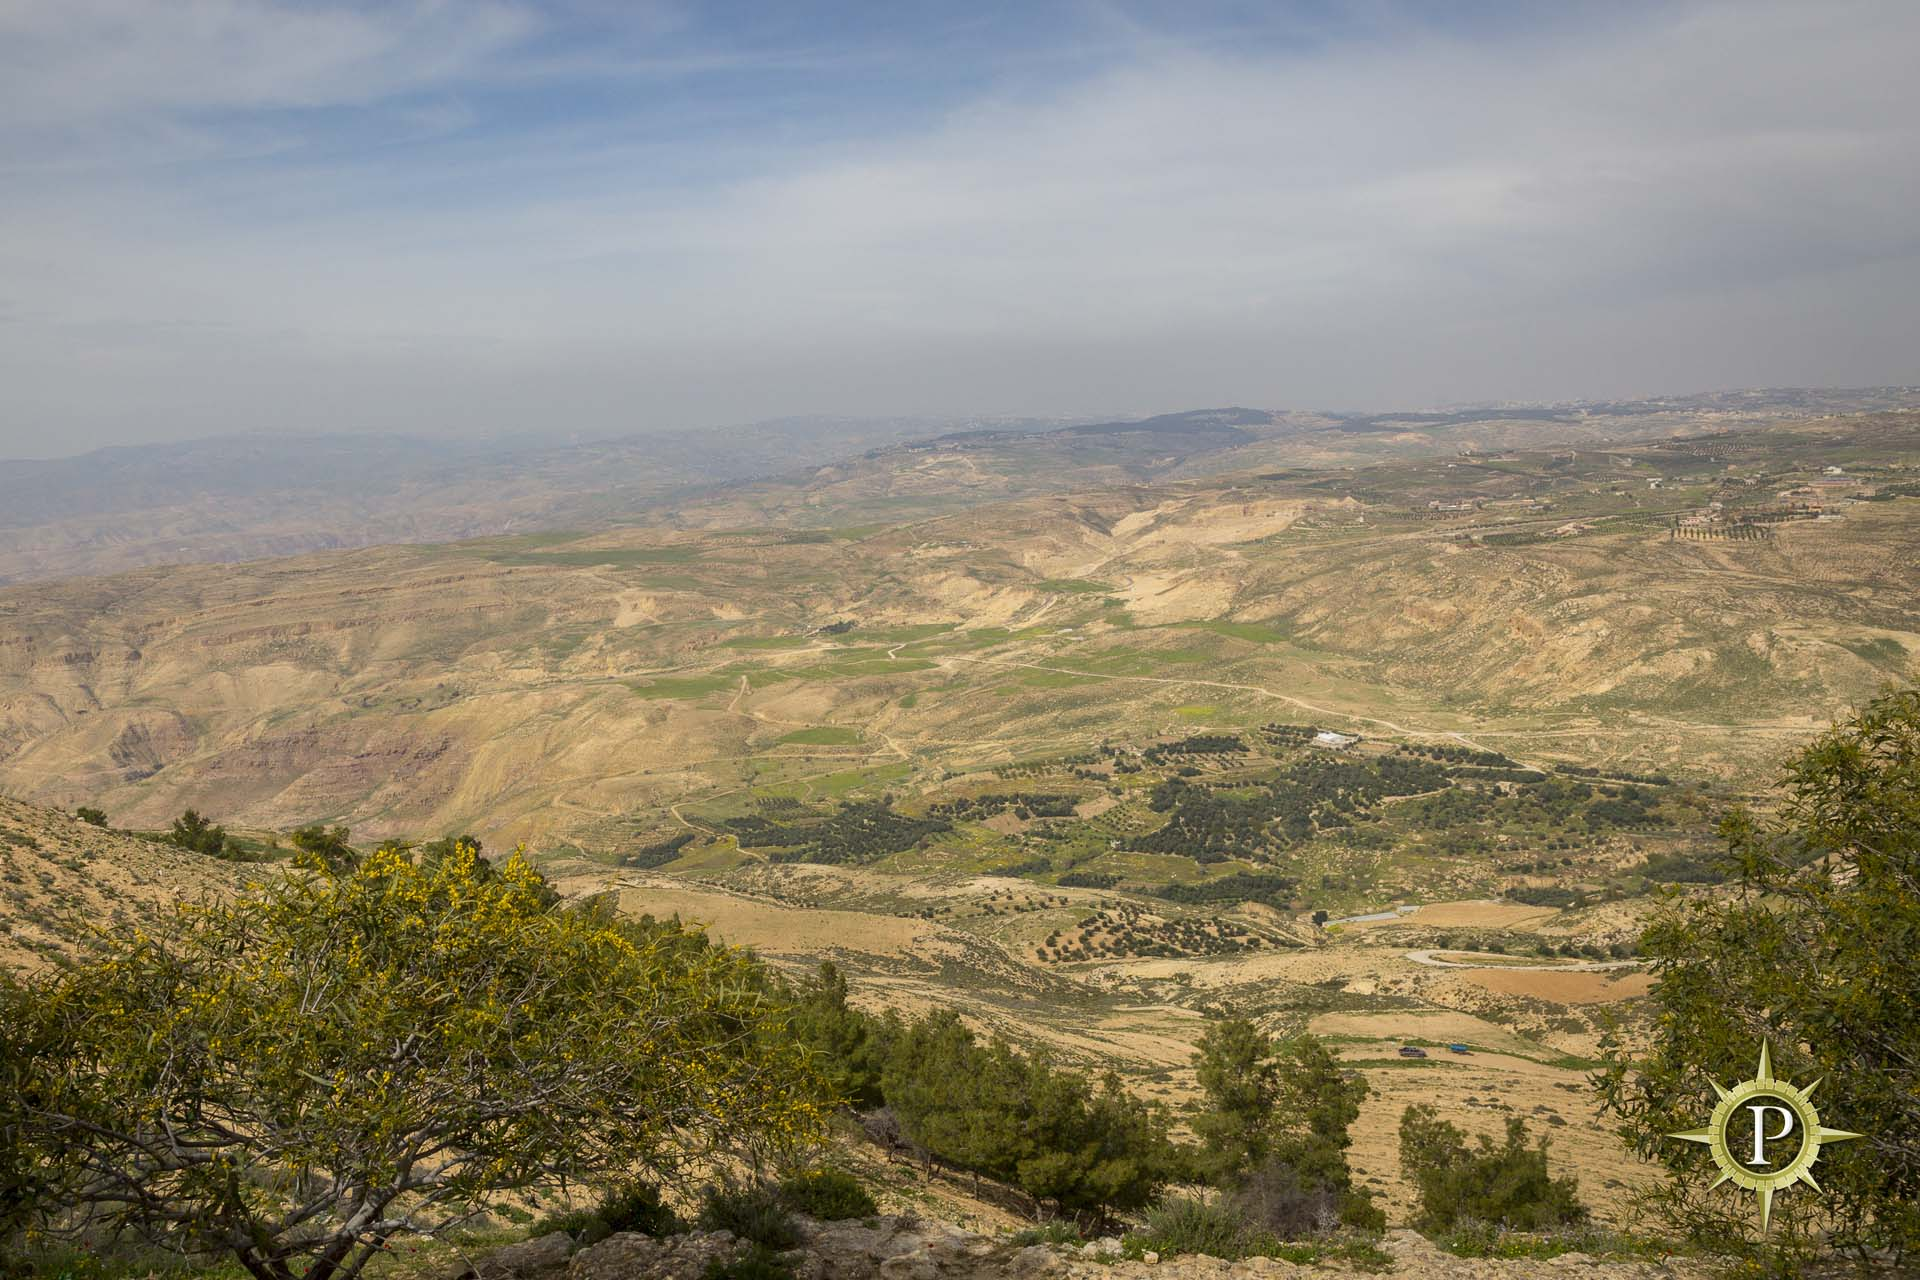 A View from Mount Nebo